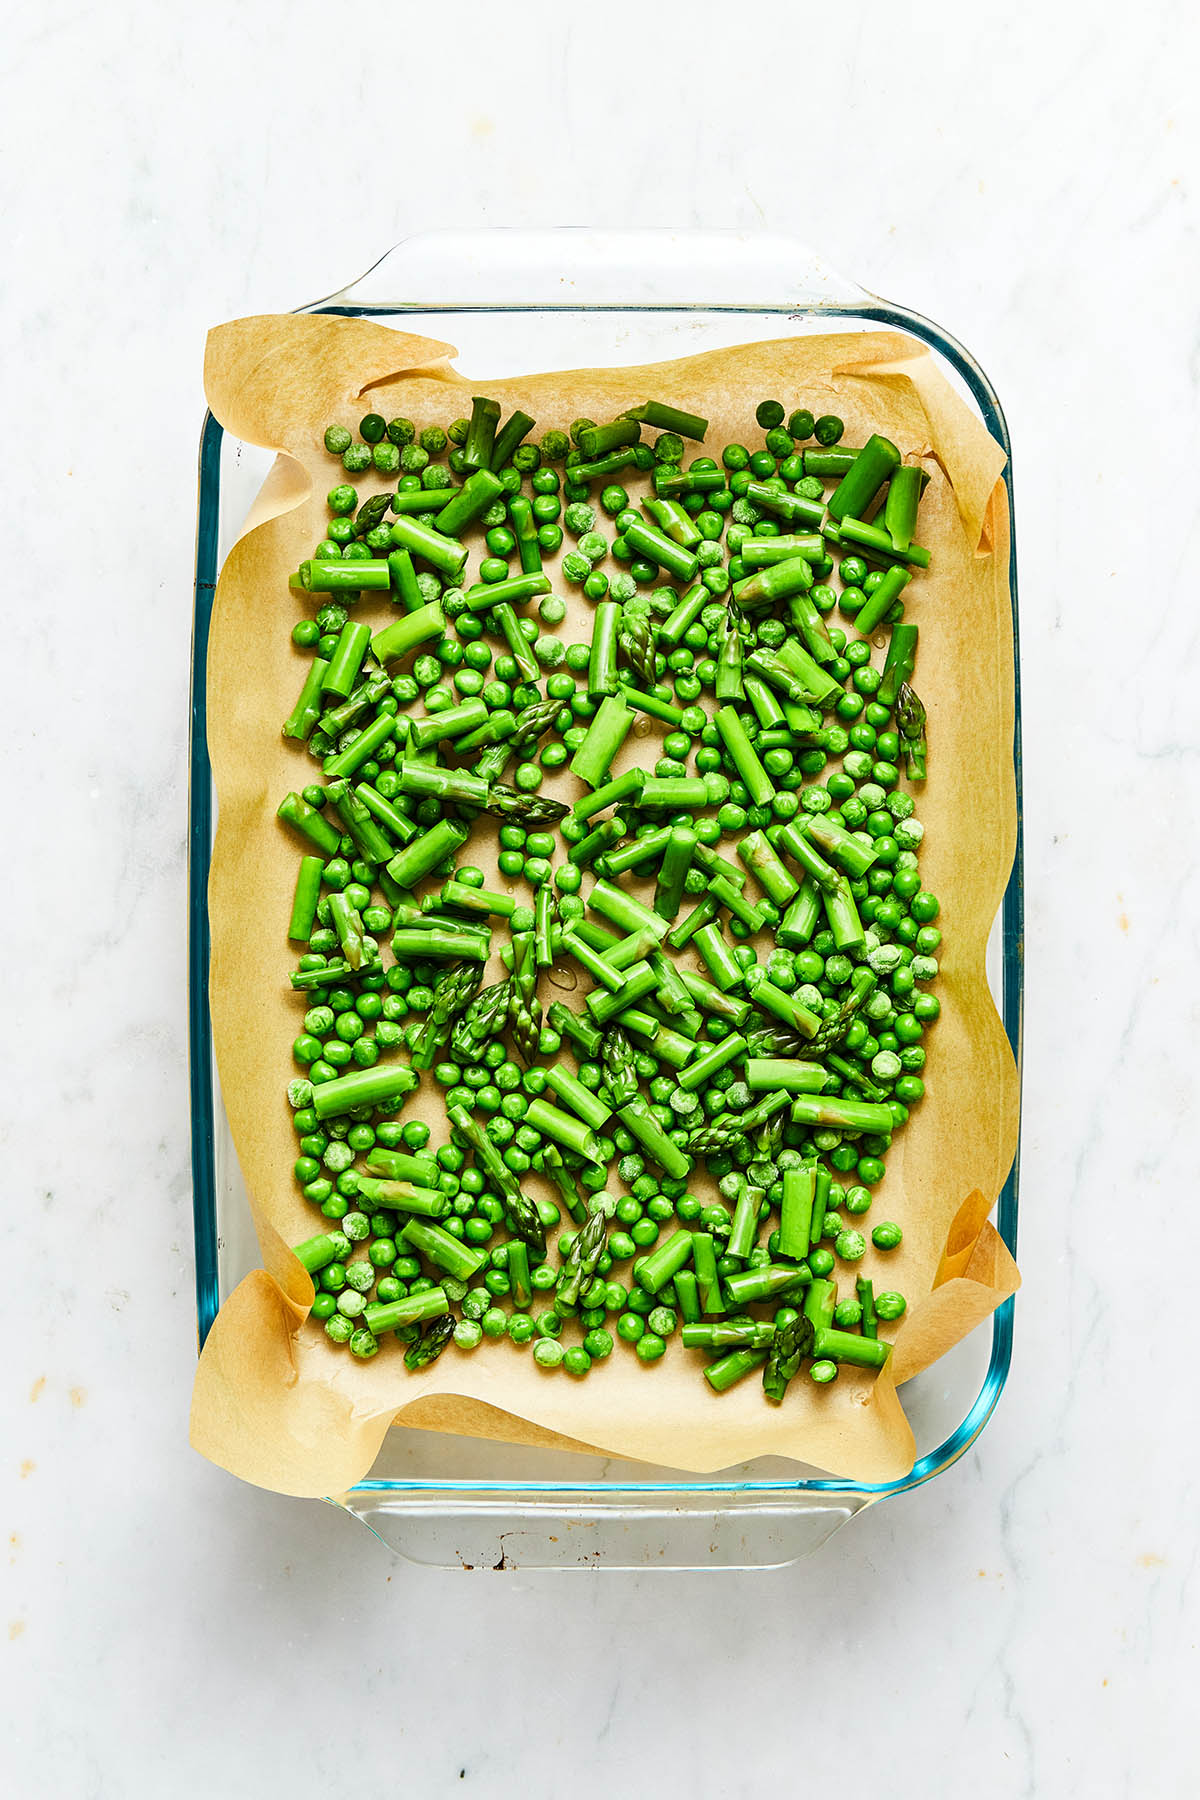 Blanched asparagus and green peas scattered inside a parchment paper-lined baking dish.